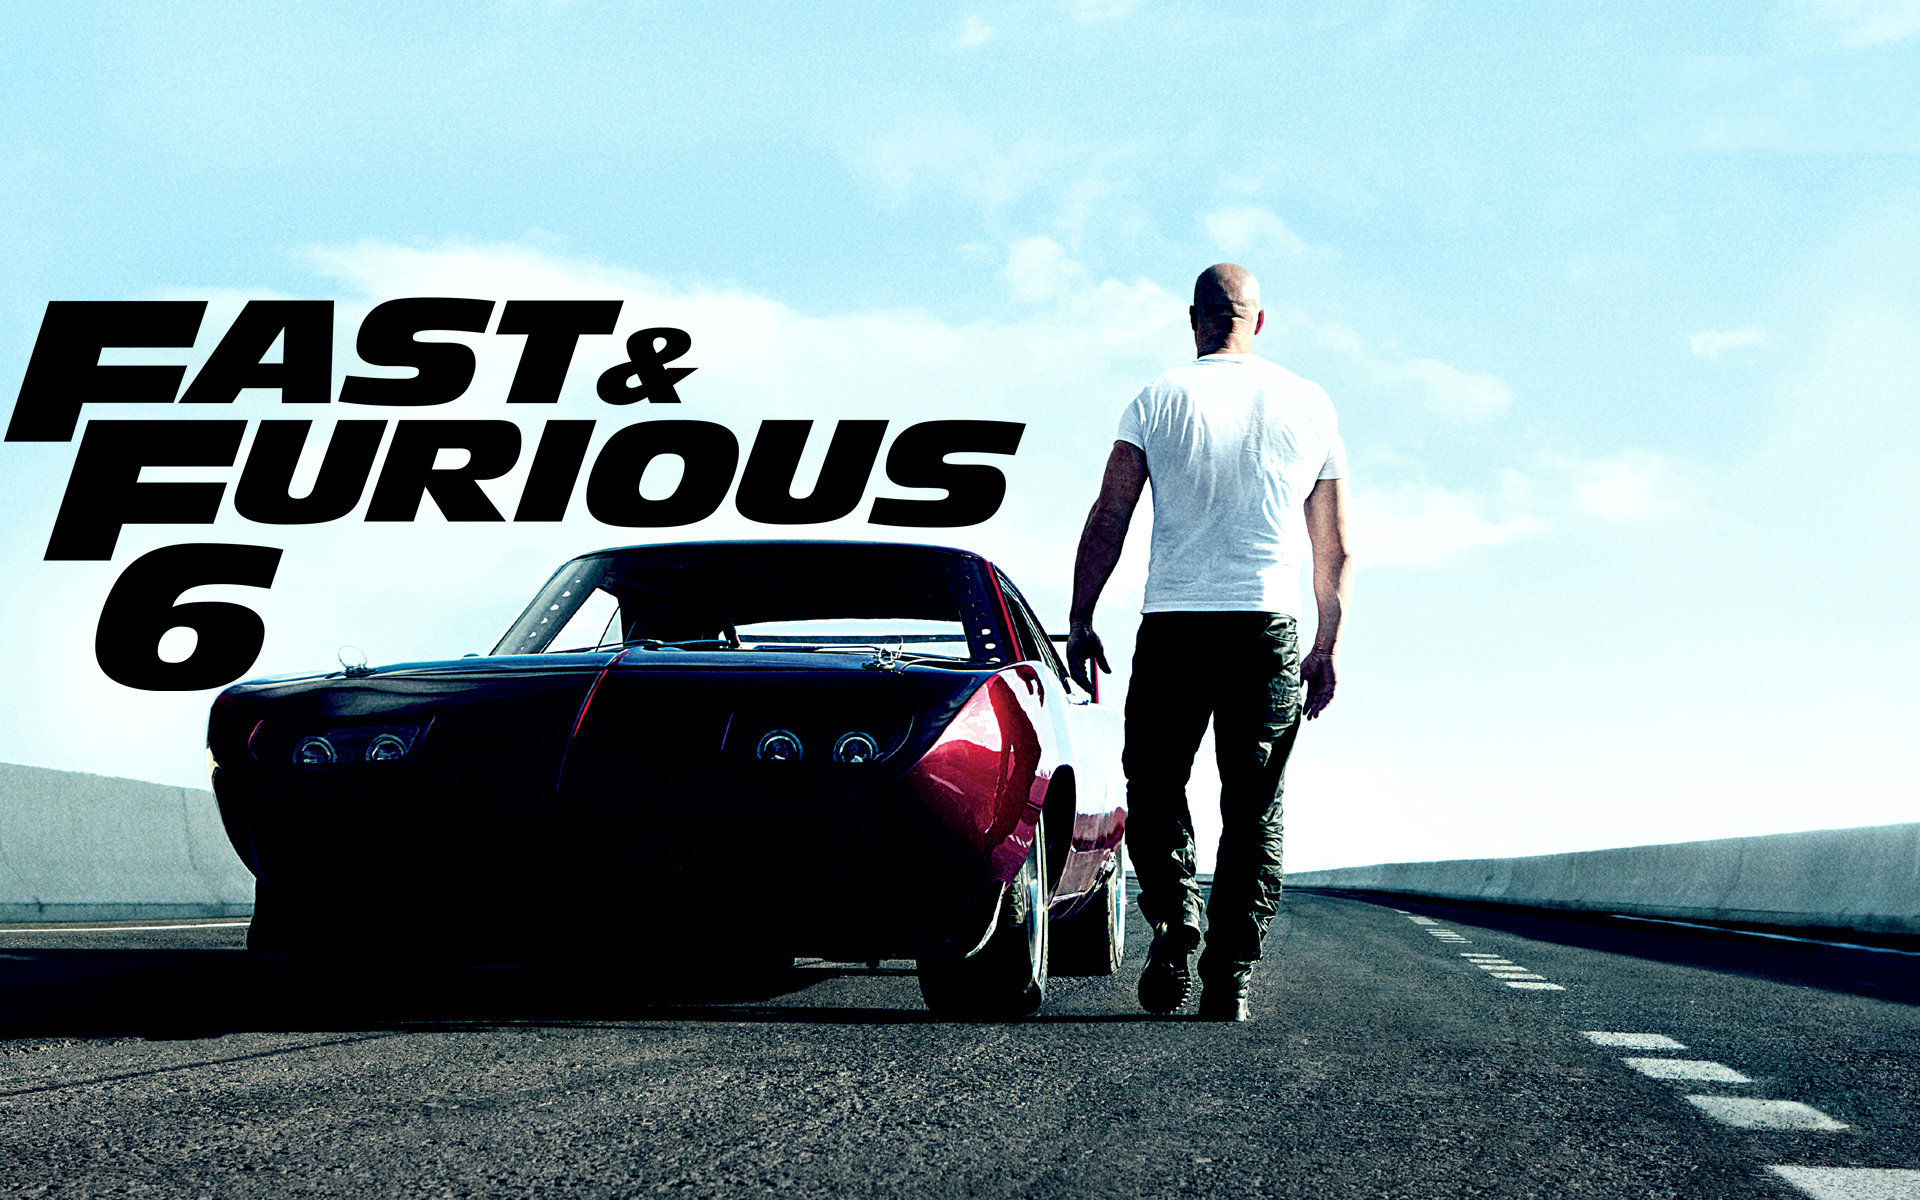 wallpaper fast and furious